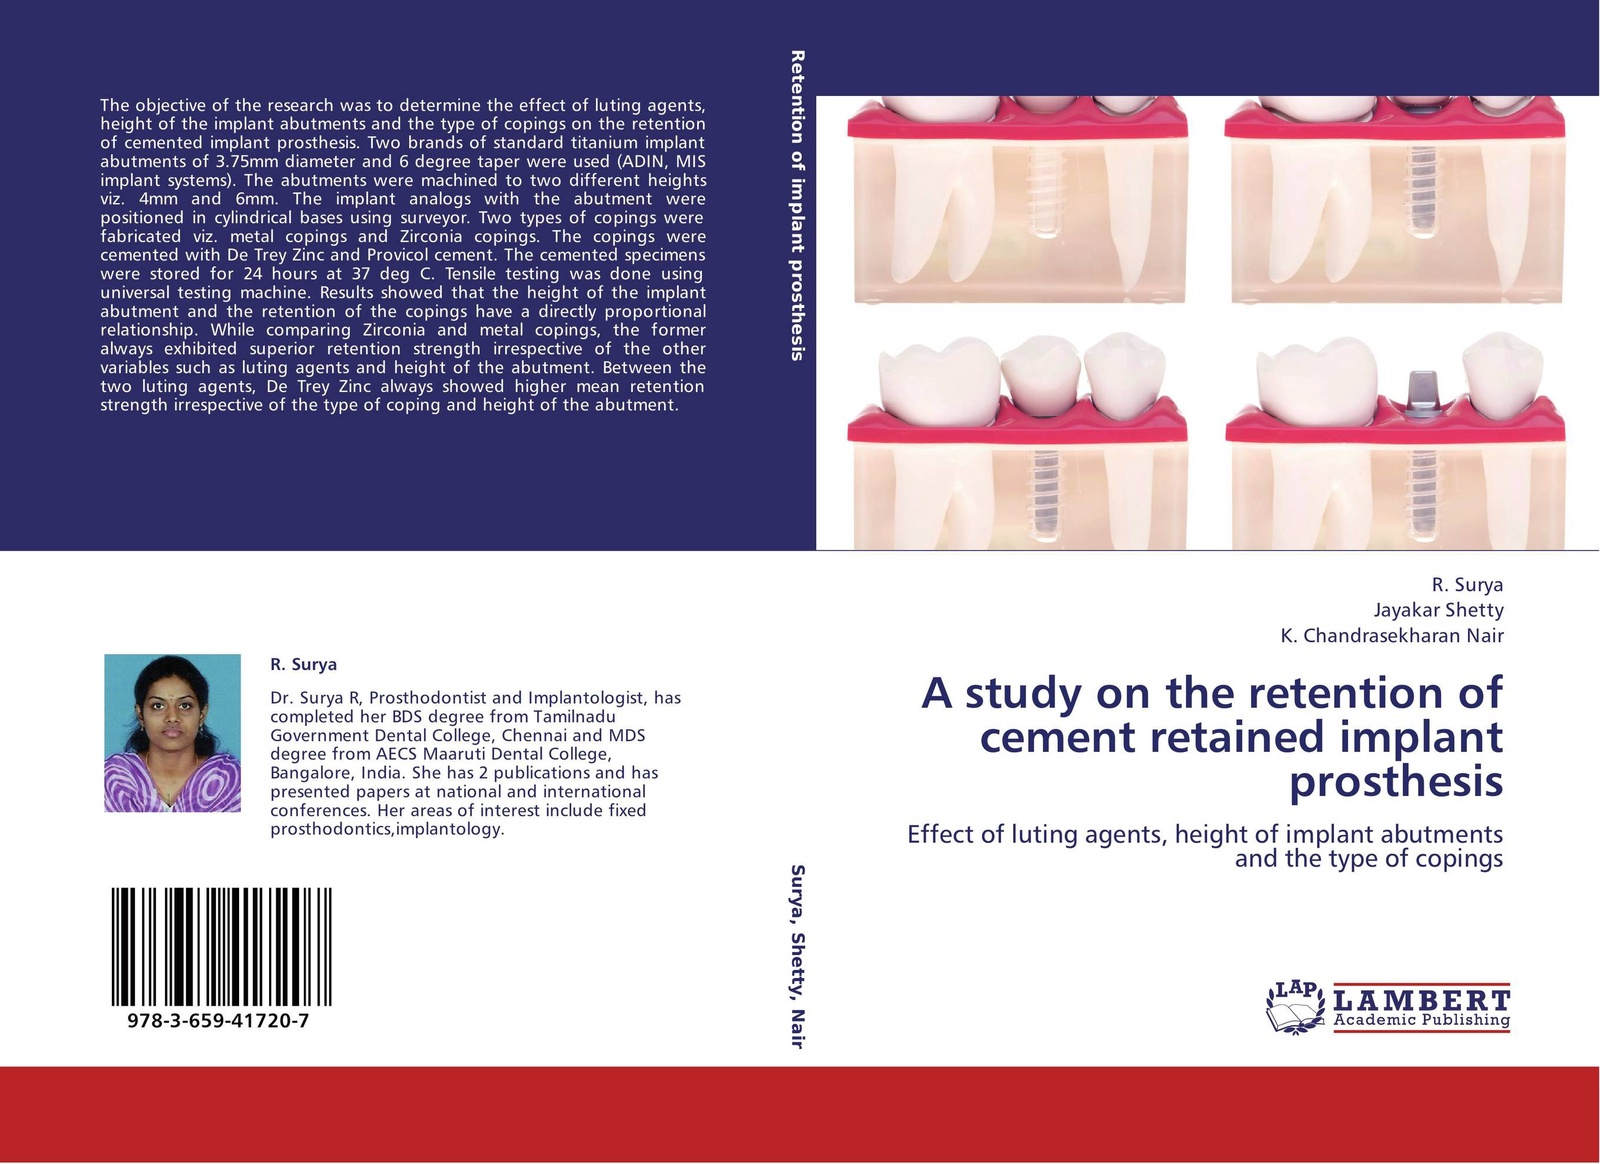 R. Surya,Jayakar Shetty and K. Chandrasekharan Nair A study on the retention of cement retained implant prosthesis